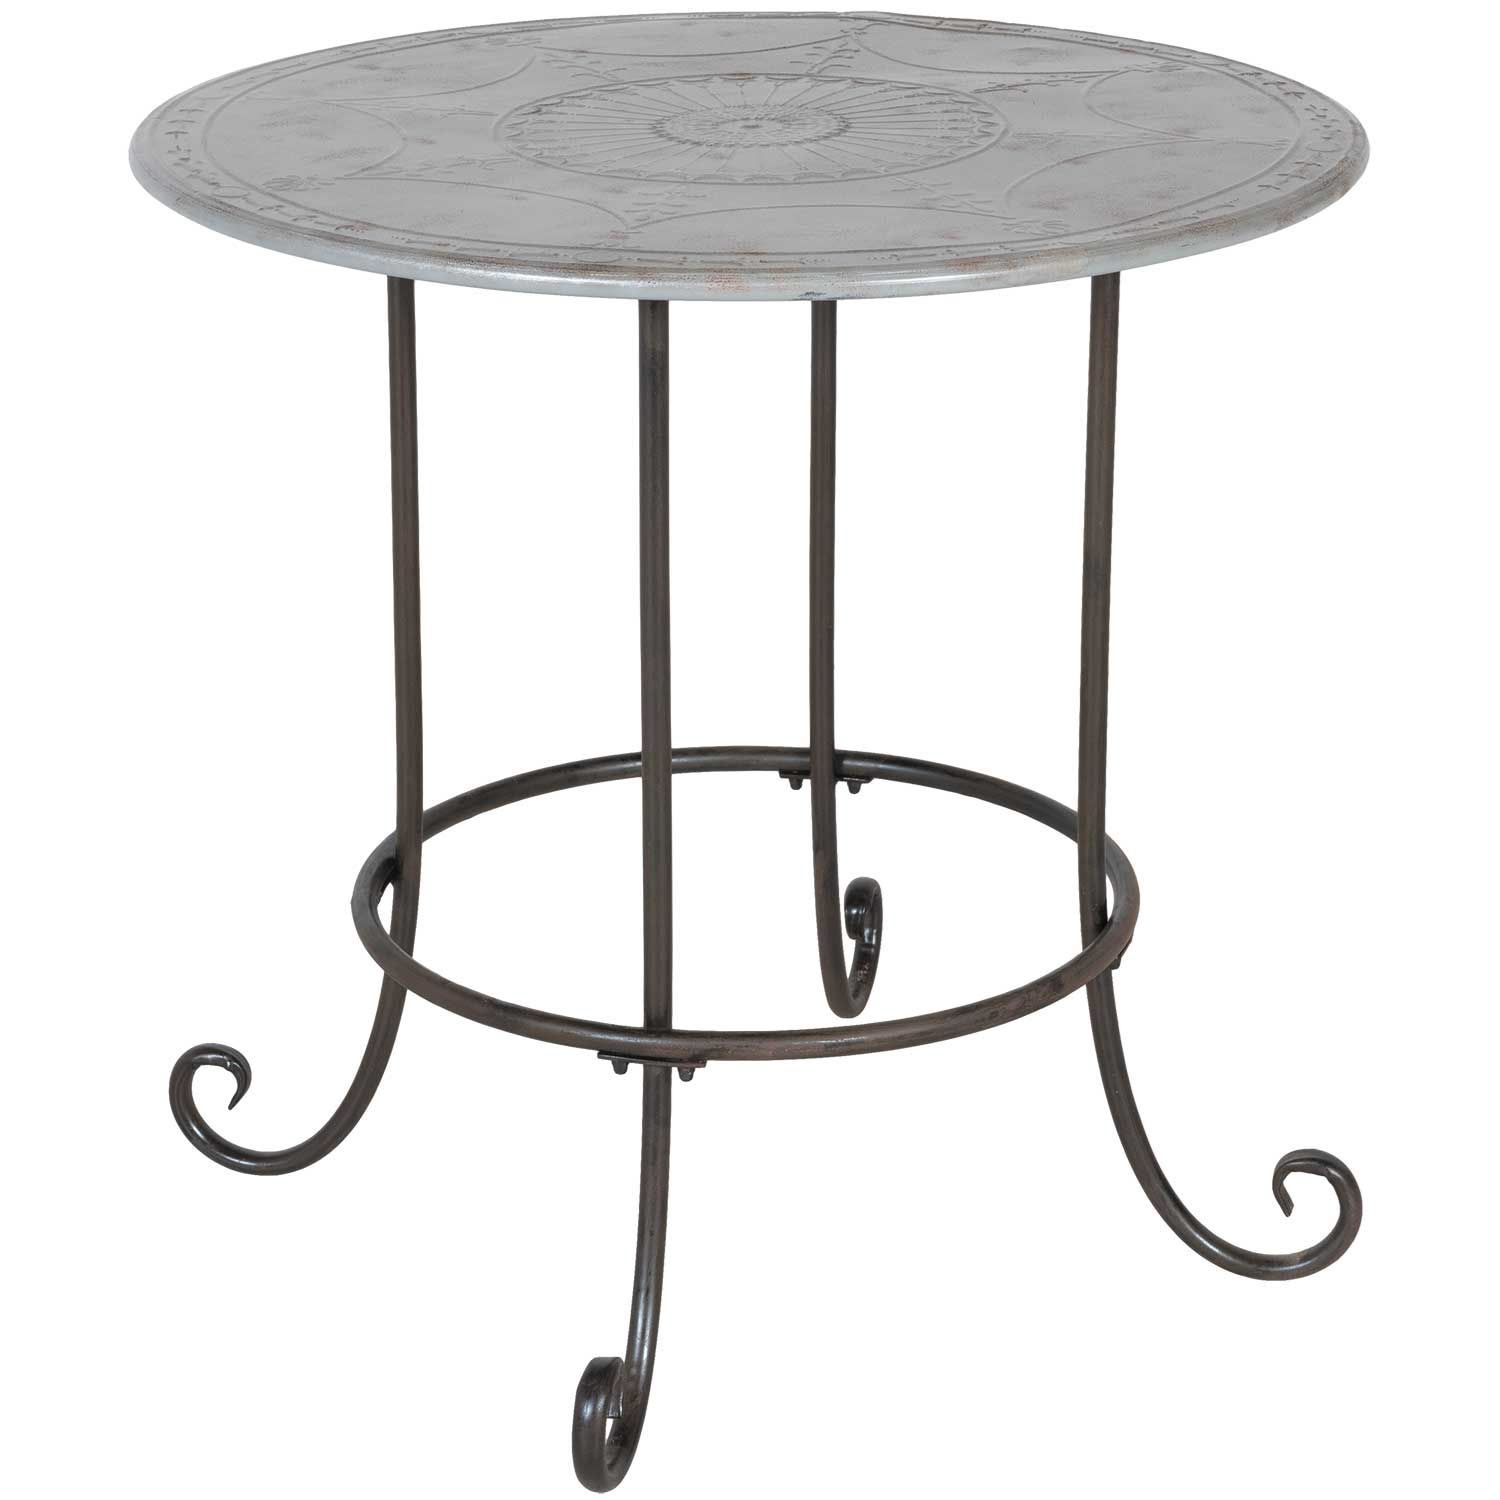 fascinating white round accent tables tablecloth kitchen table small and for glass marble wood distressed argos melamine antique rent chairs bulk tablecloths inch granite rental